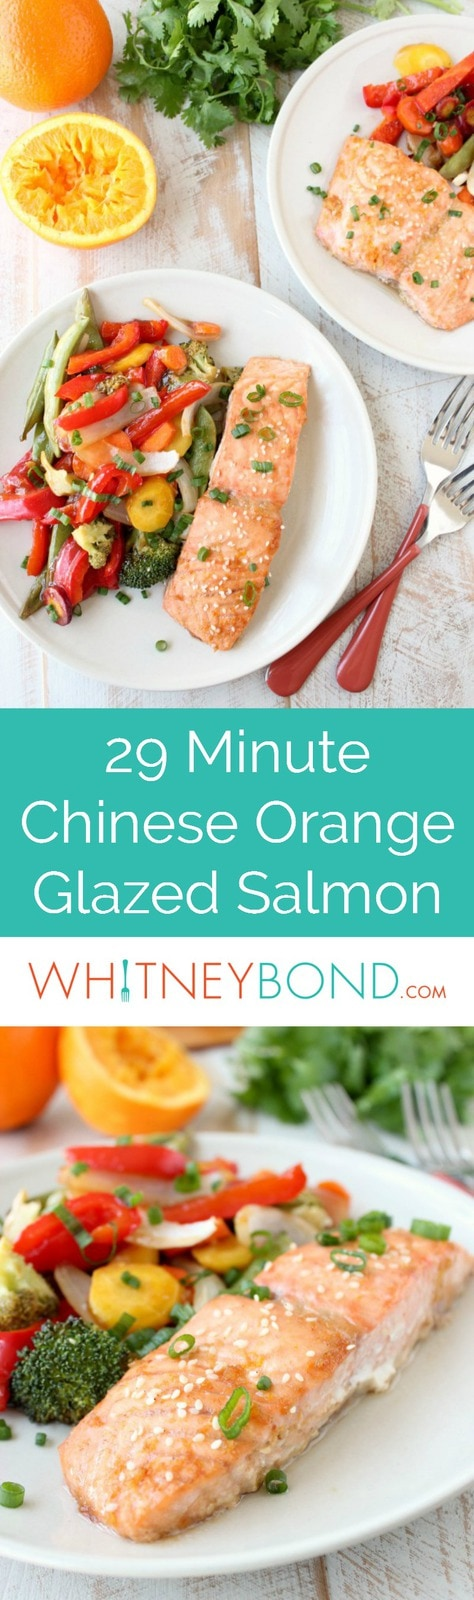 Orange glazed salmon foil dinner recipe whitneybond an easy chinese orange sauce is prepared brushed over orange glazed salmon and colorful vegetables forumfinder Image collections